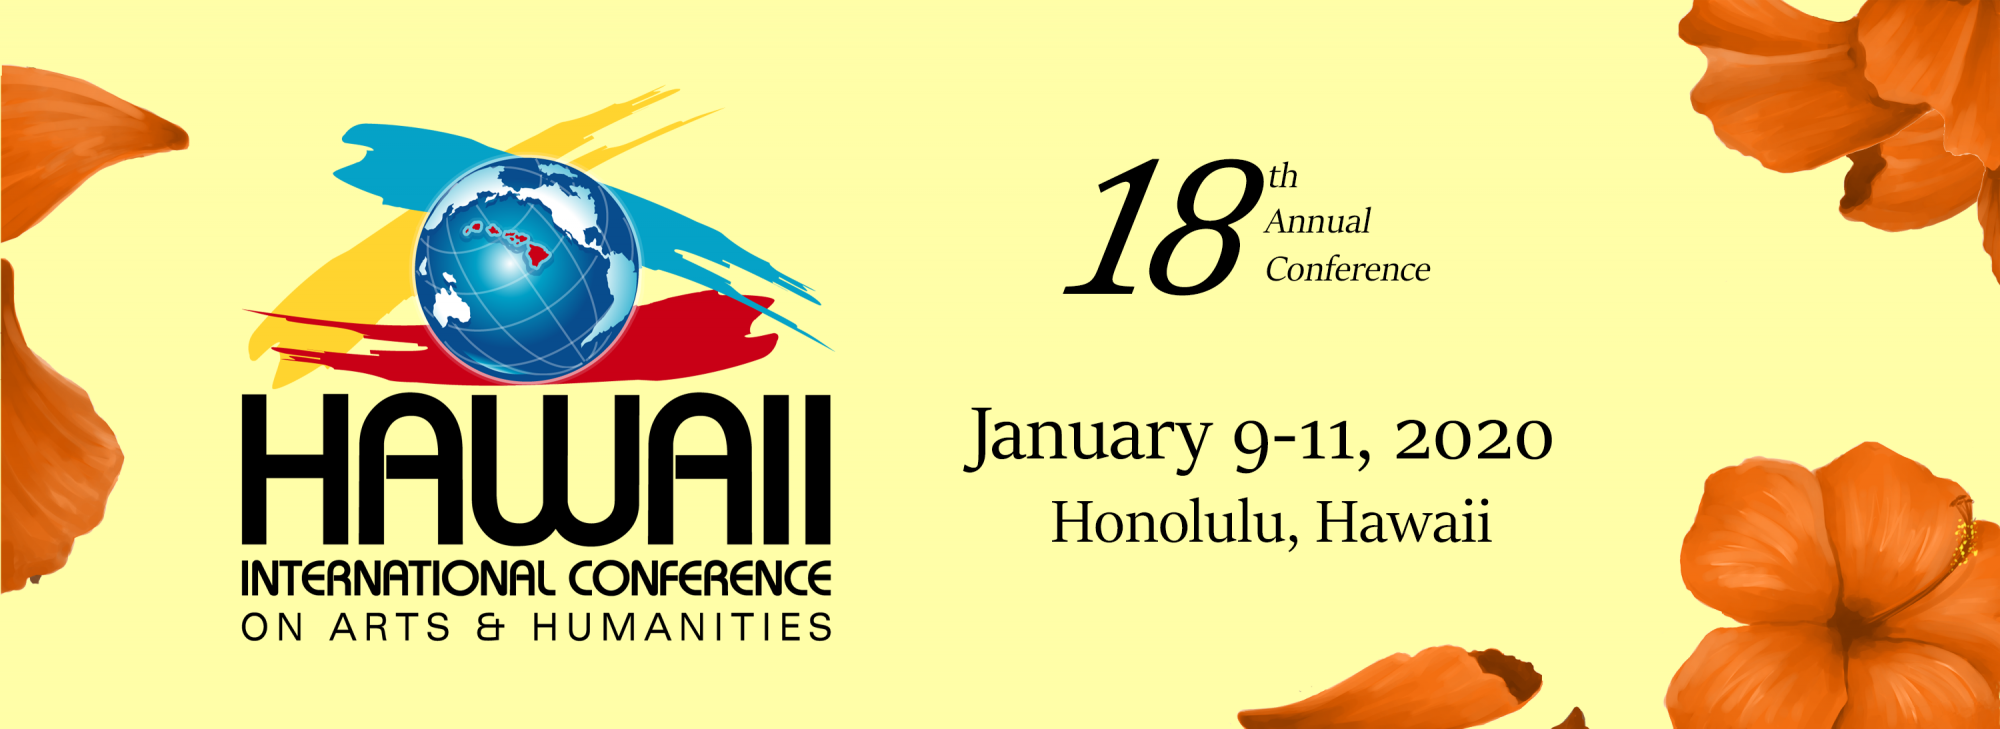 Hawaii International Conference on Arts and Humanities